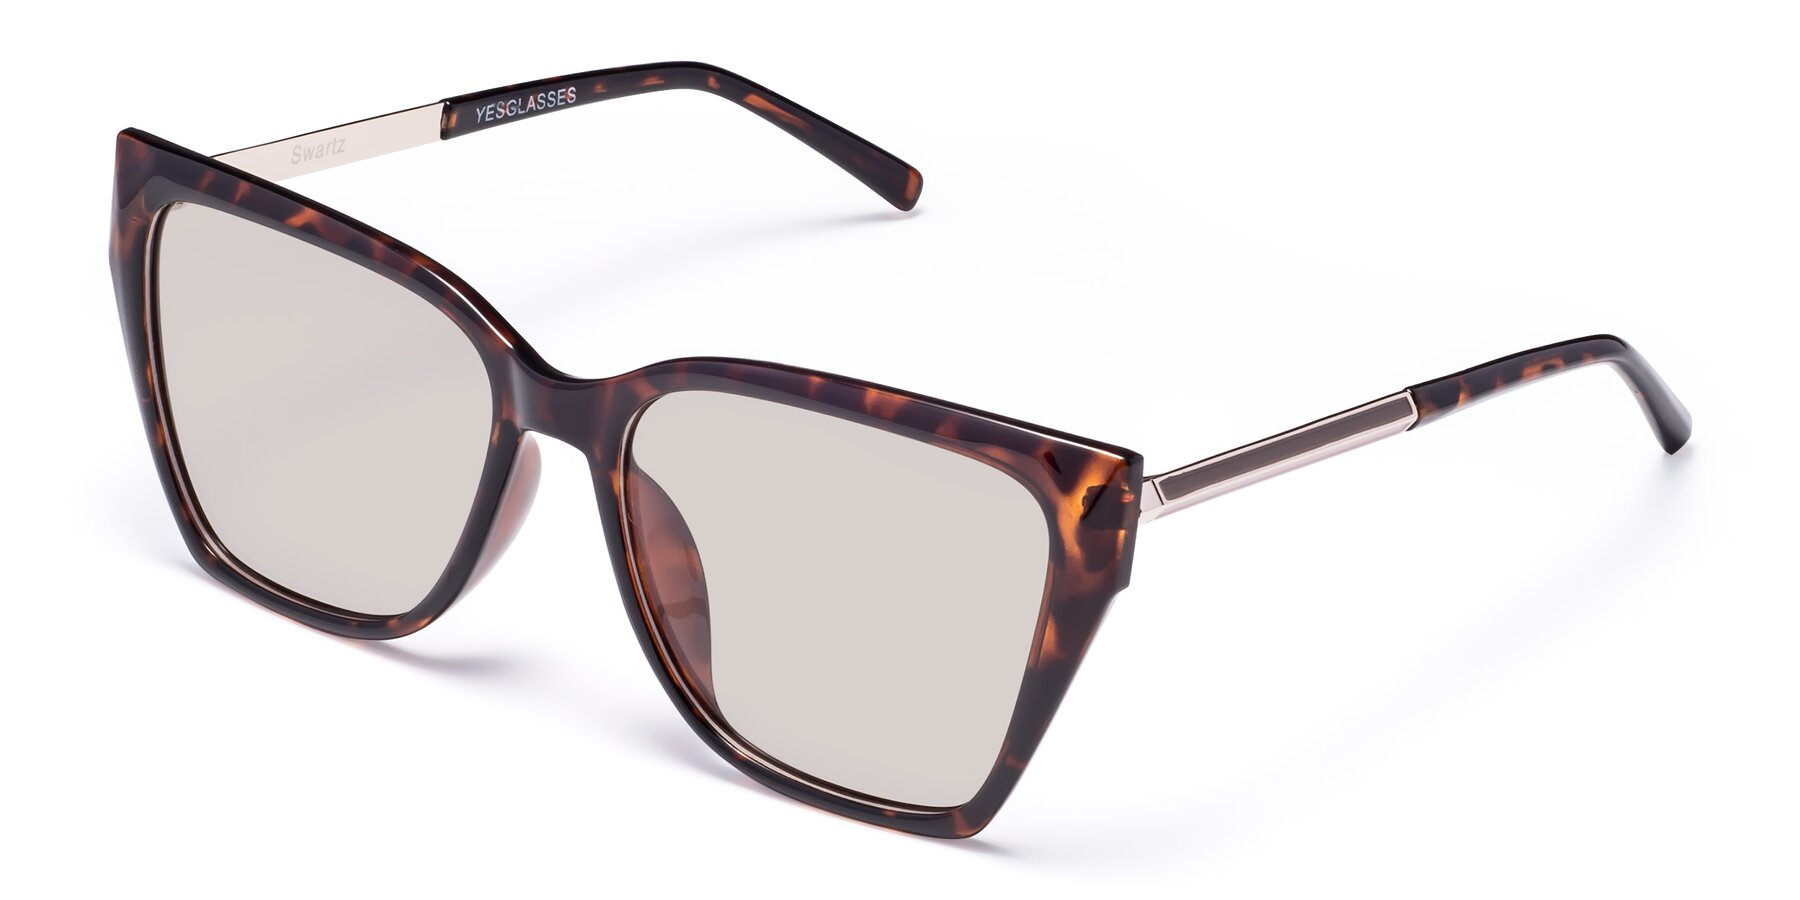 Angle of Swartz in Tortoise with Light Brown Tinted Lenses